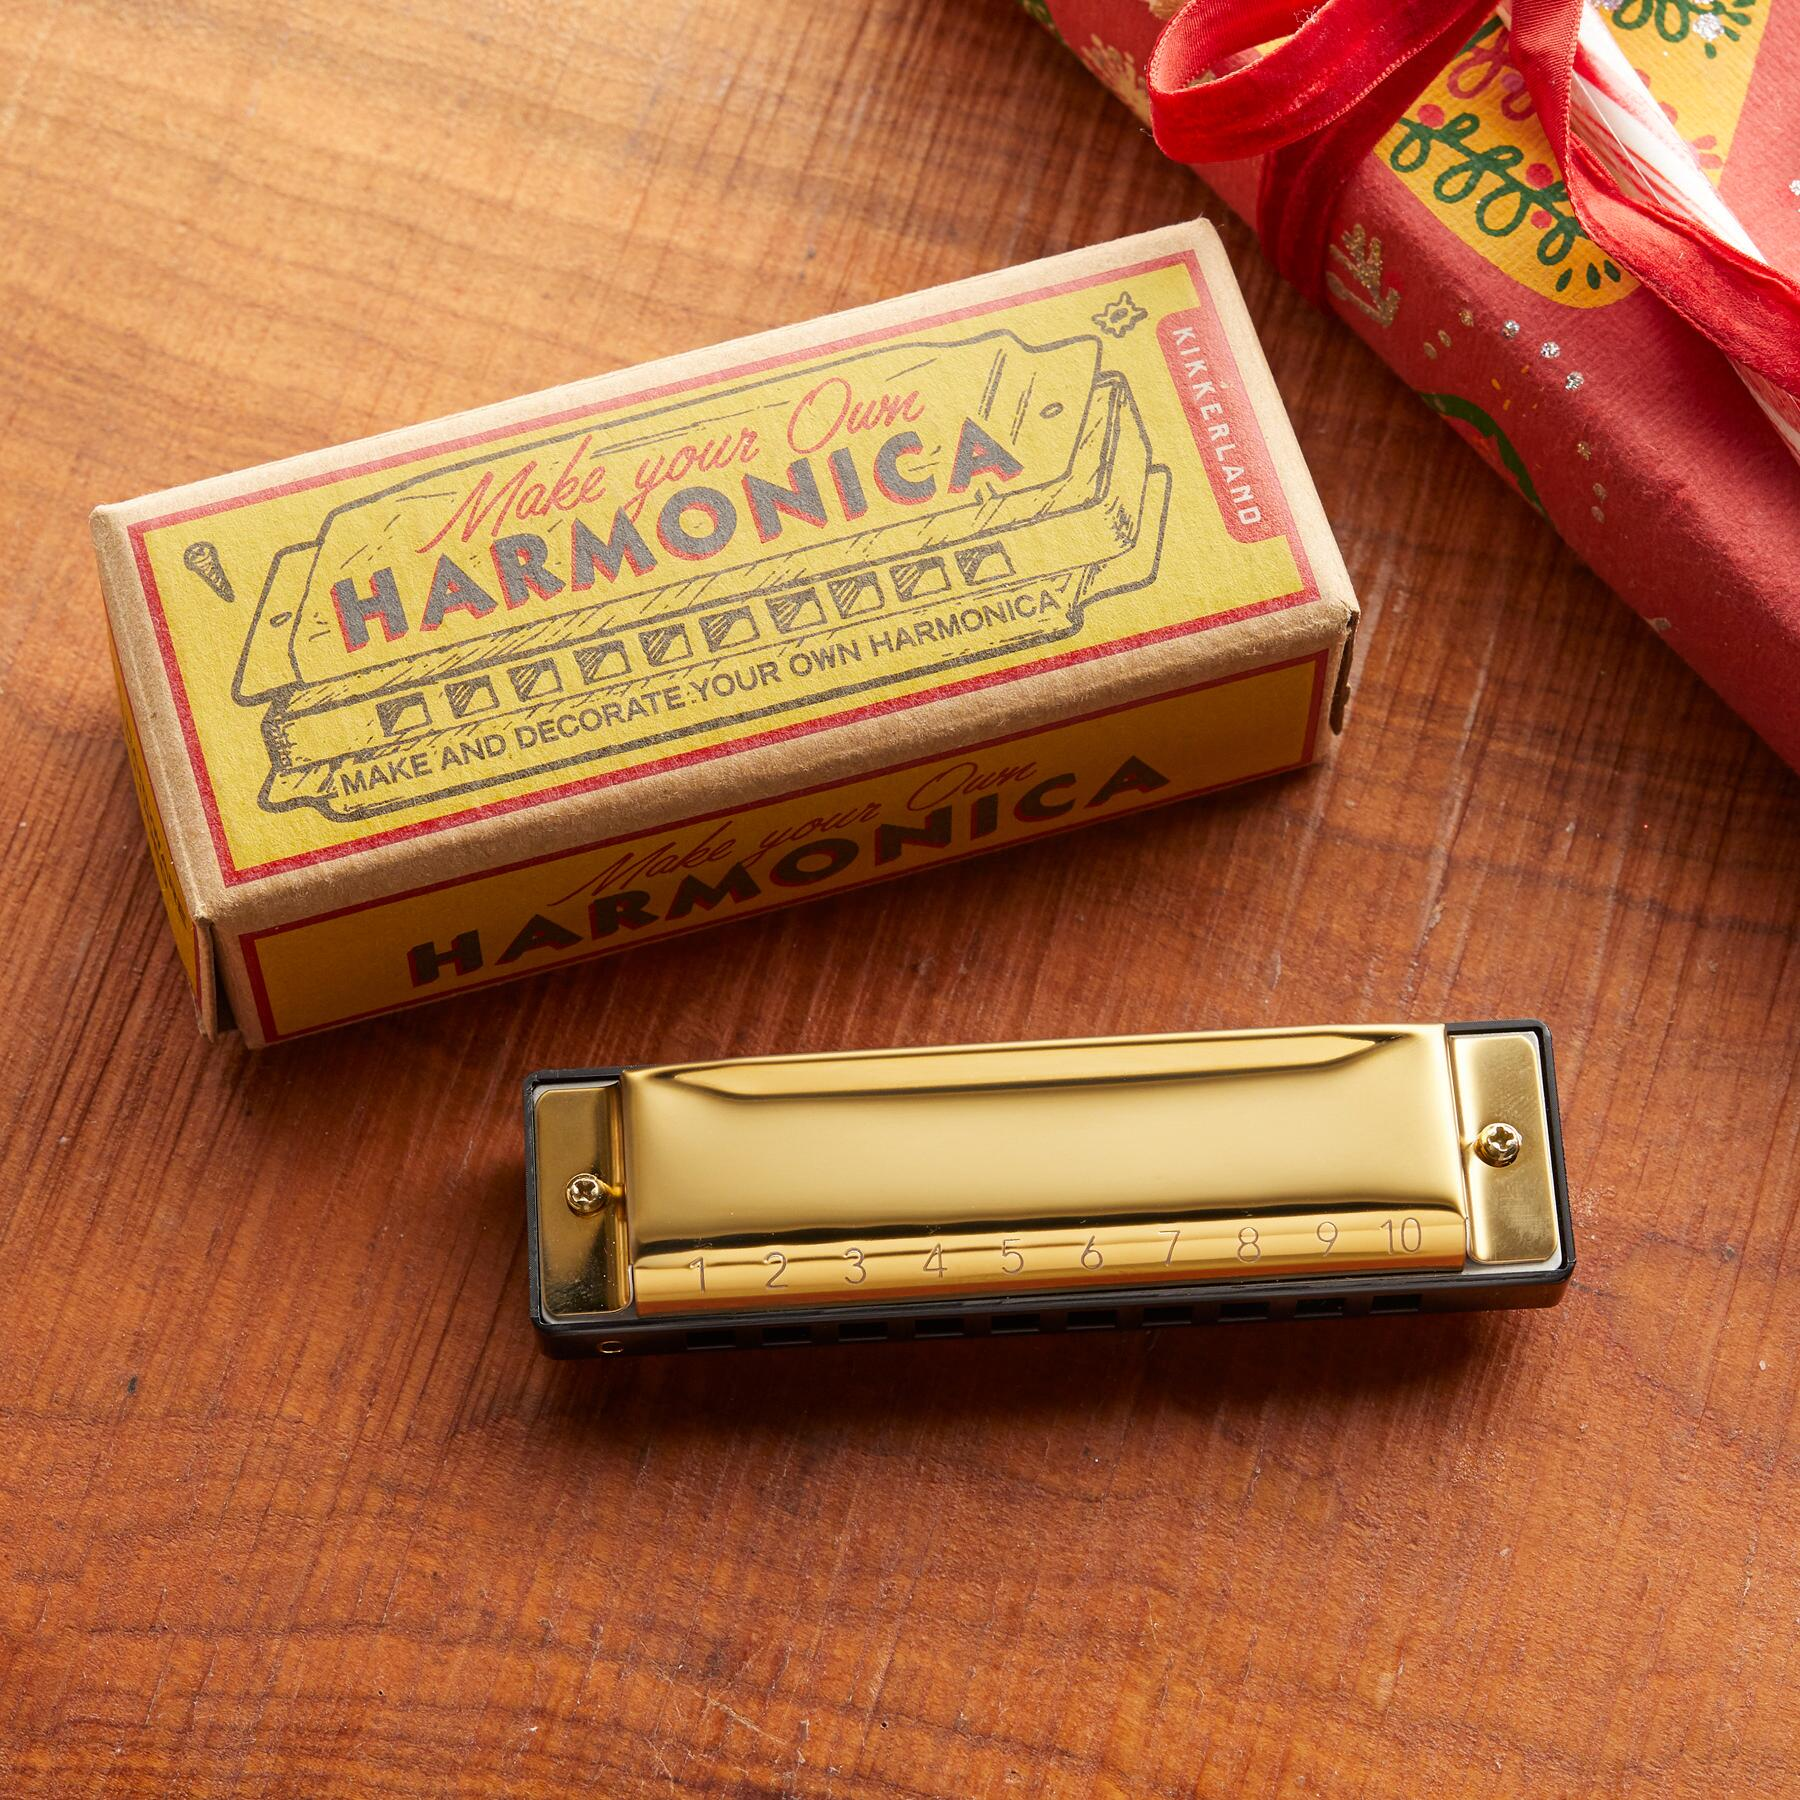 MAKE YOUR OWN HARMONICA: View 1